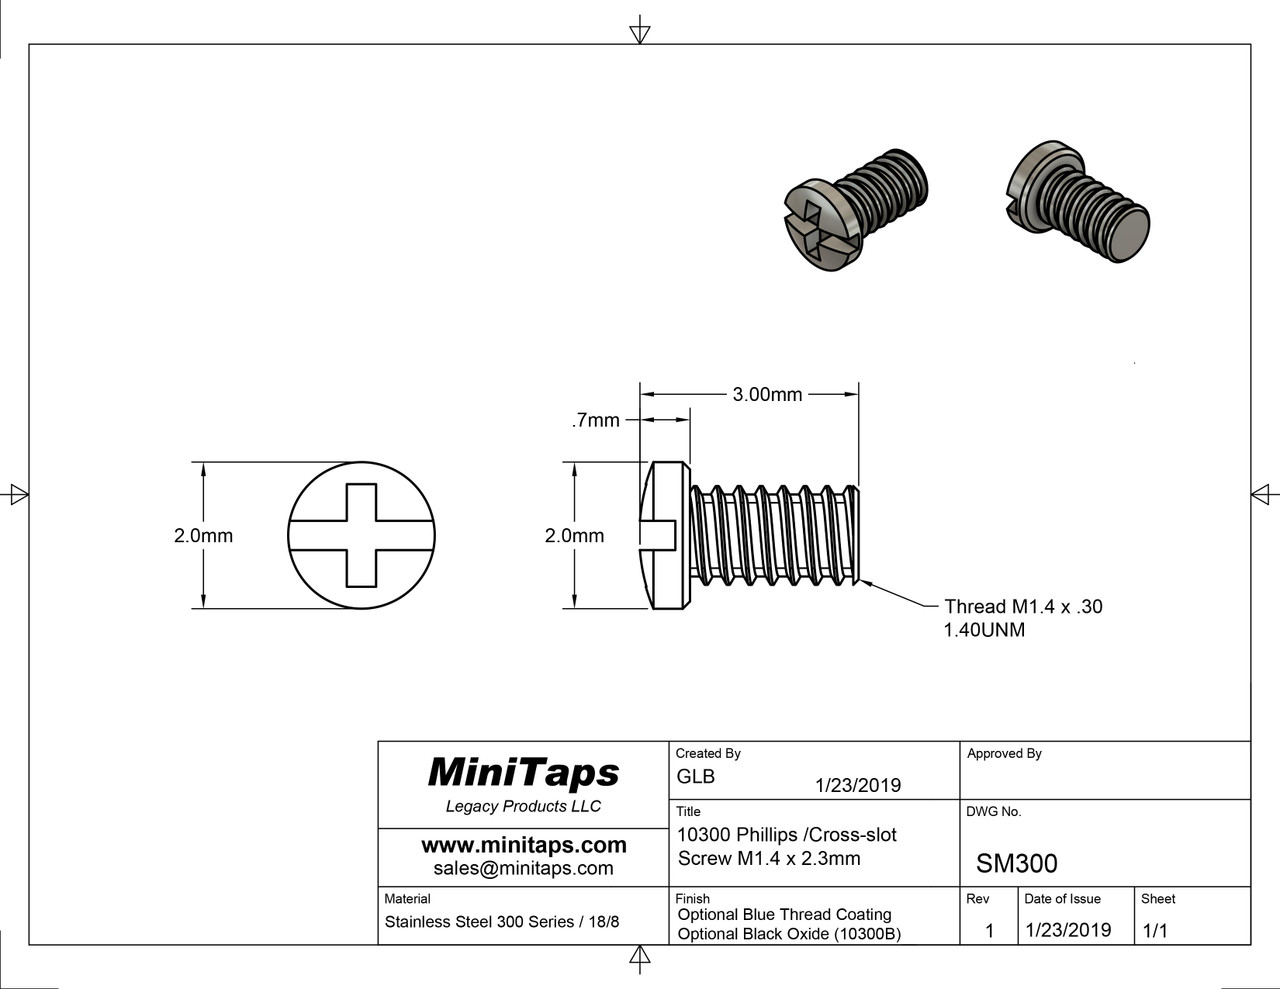 Thread M1.4 pitch .30mm  Length 2.3mm, Machine Screw Pan Head with Philips X-Slot drive overall length 3.0mm stainless steel  100 count package